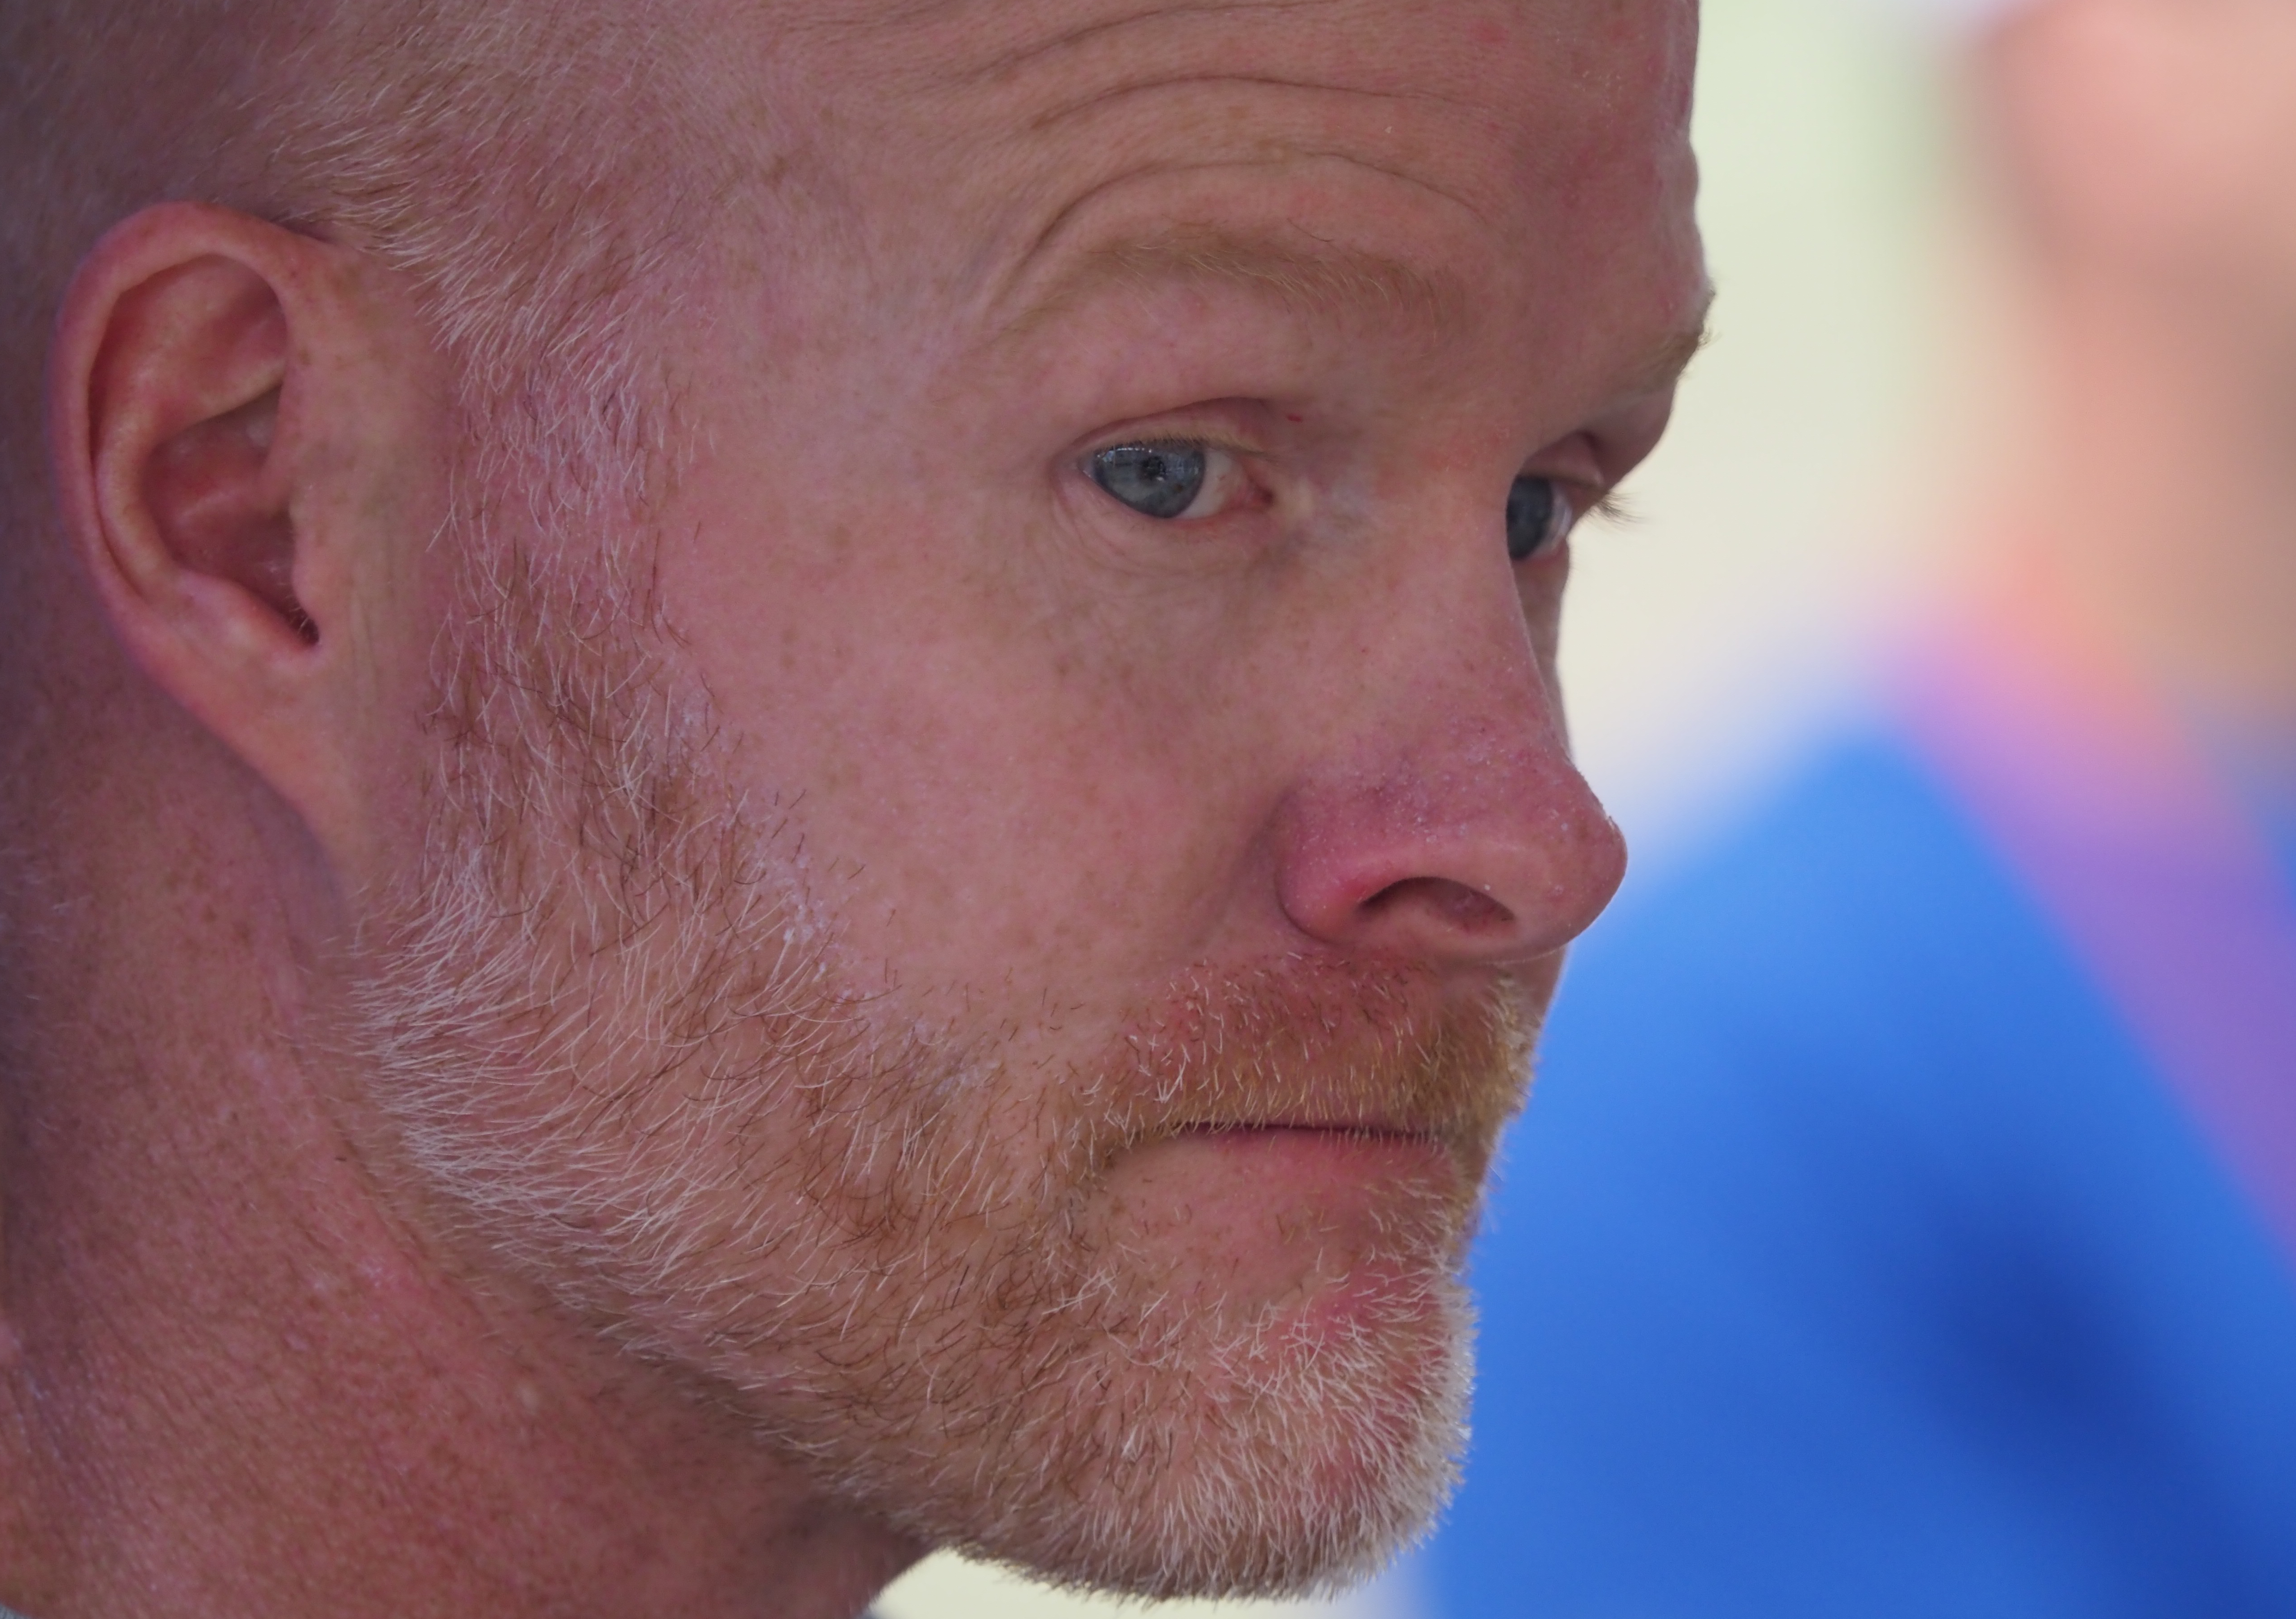 Buffalo Bills' Sean McDermott most likely to get fired after disastrous season, says ESPN+